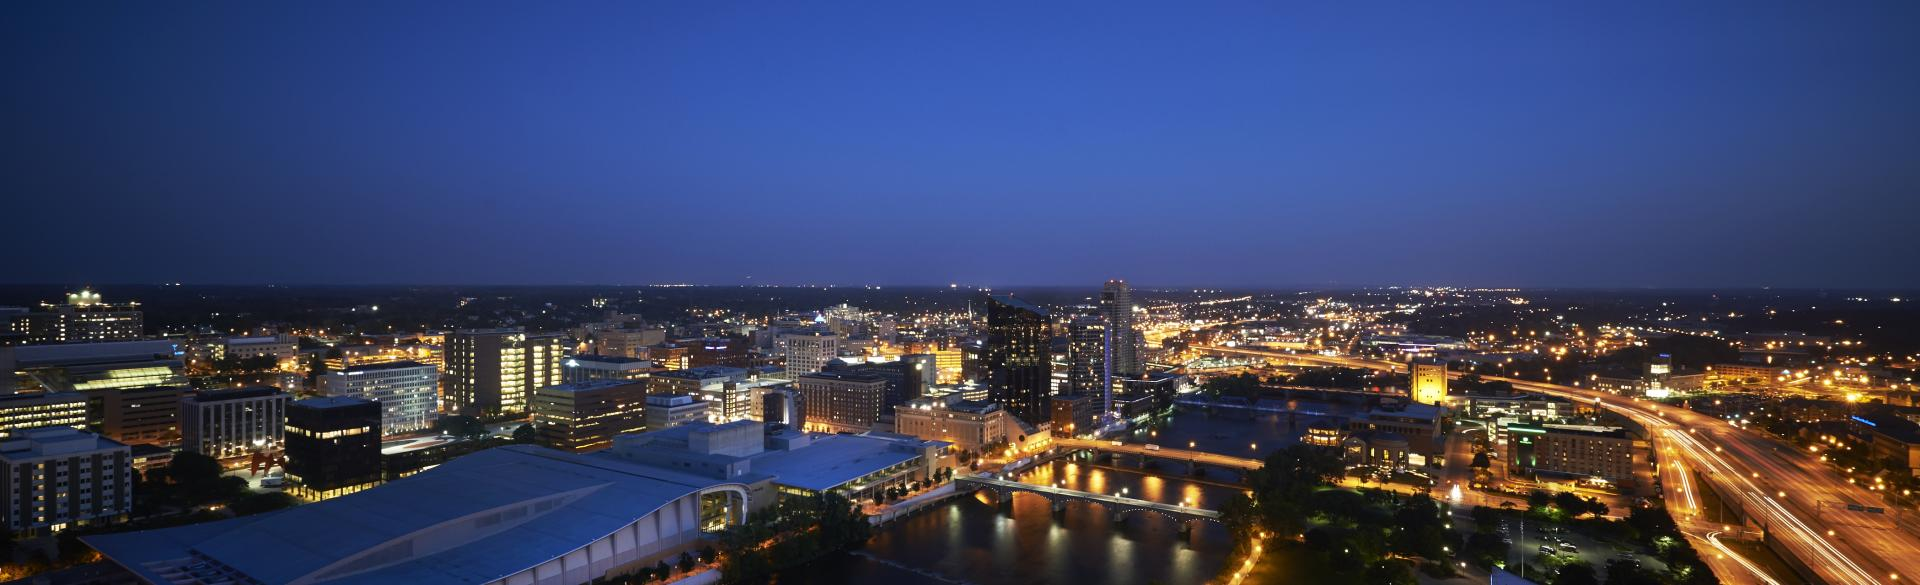 Grand Rapids at Night